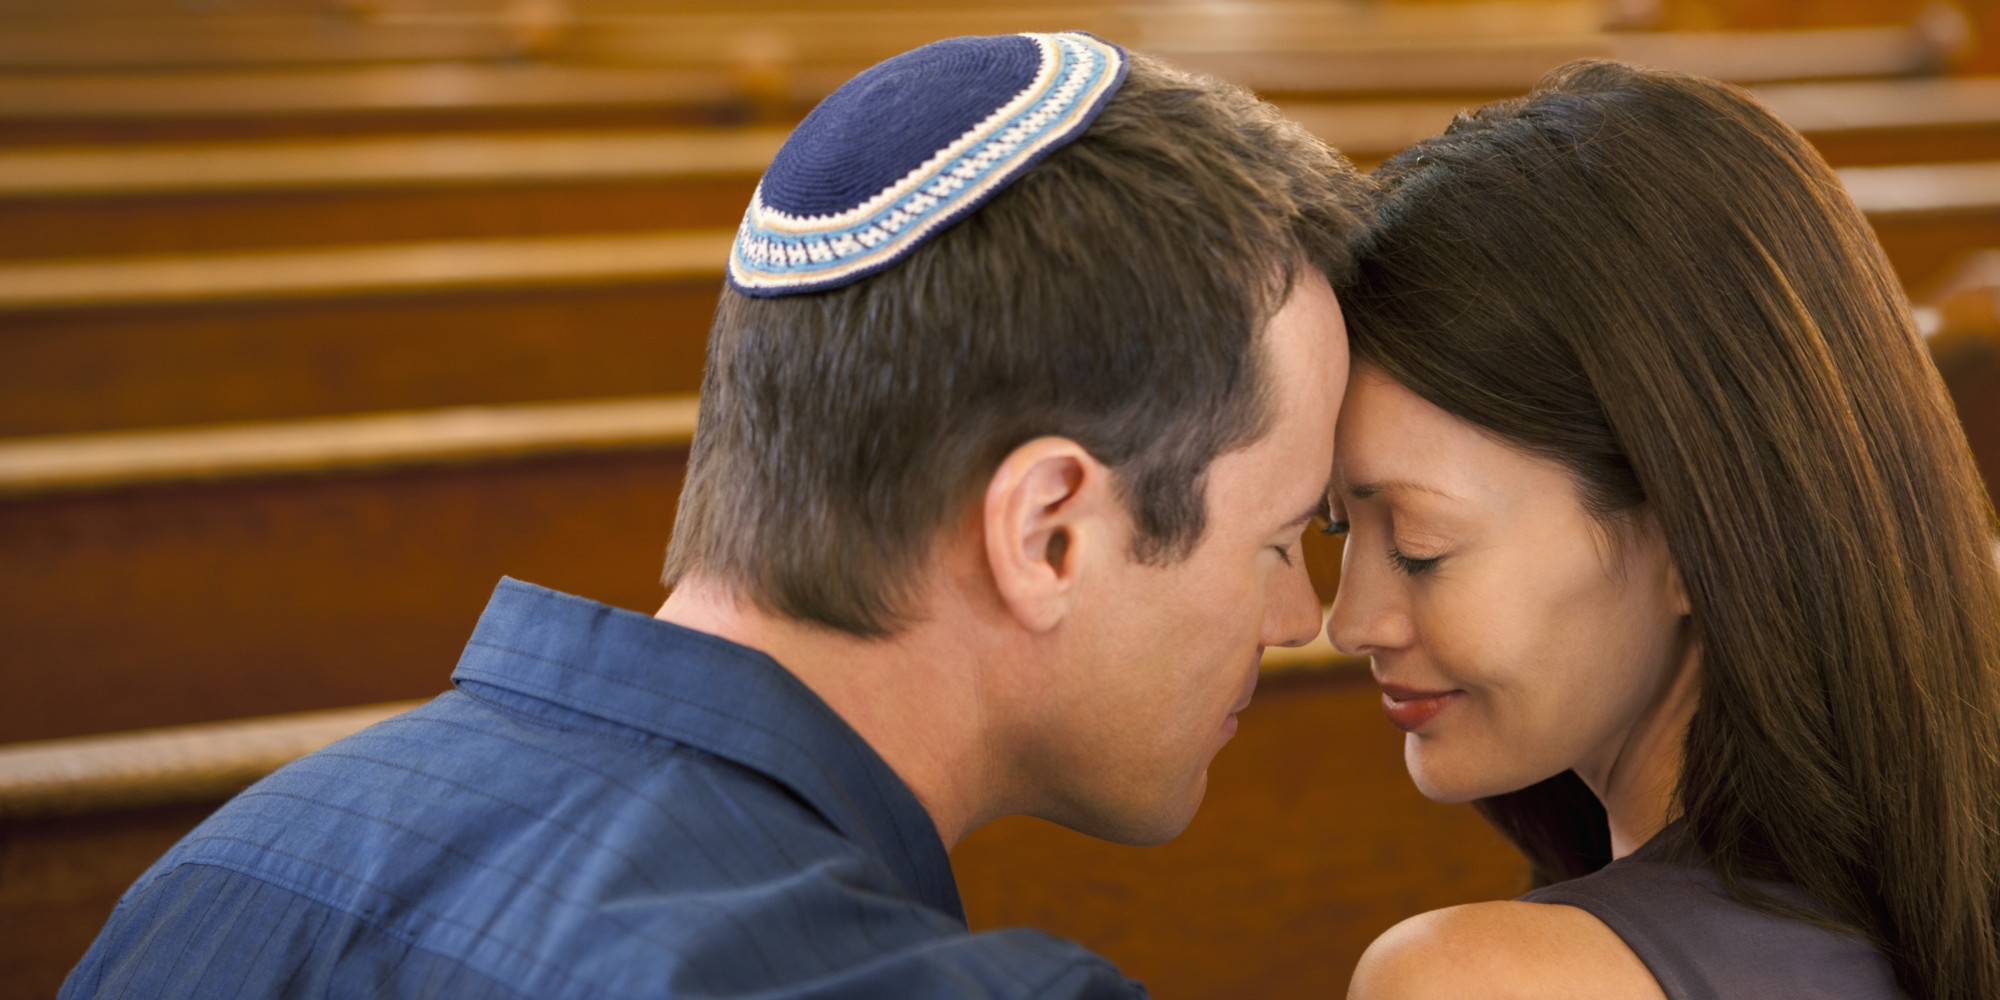 jewish single men in goddard For every jewish man in new york in our database, there are 35 jewish women so think of it as a shabbat dinner, where there are two single jewish guys, and seven women vying for their attention.